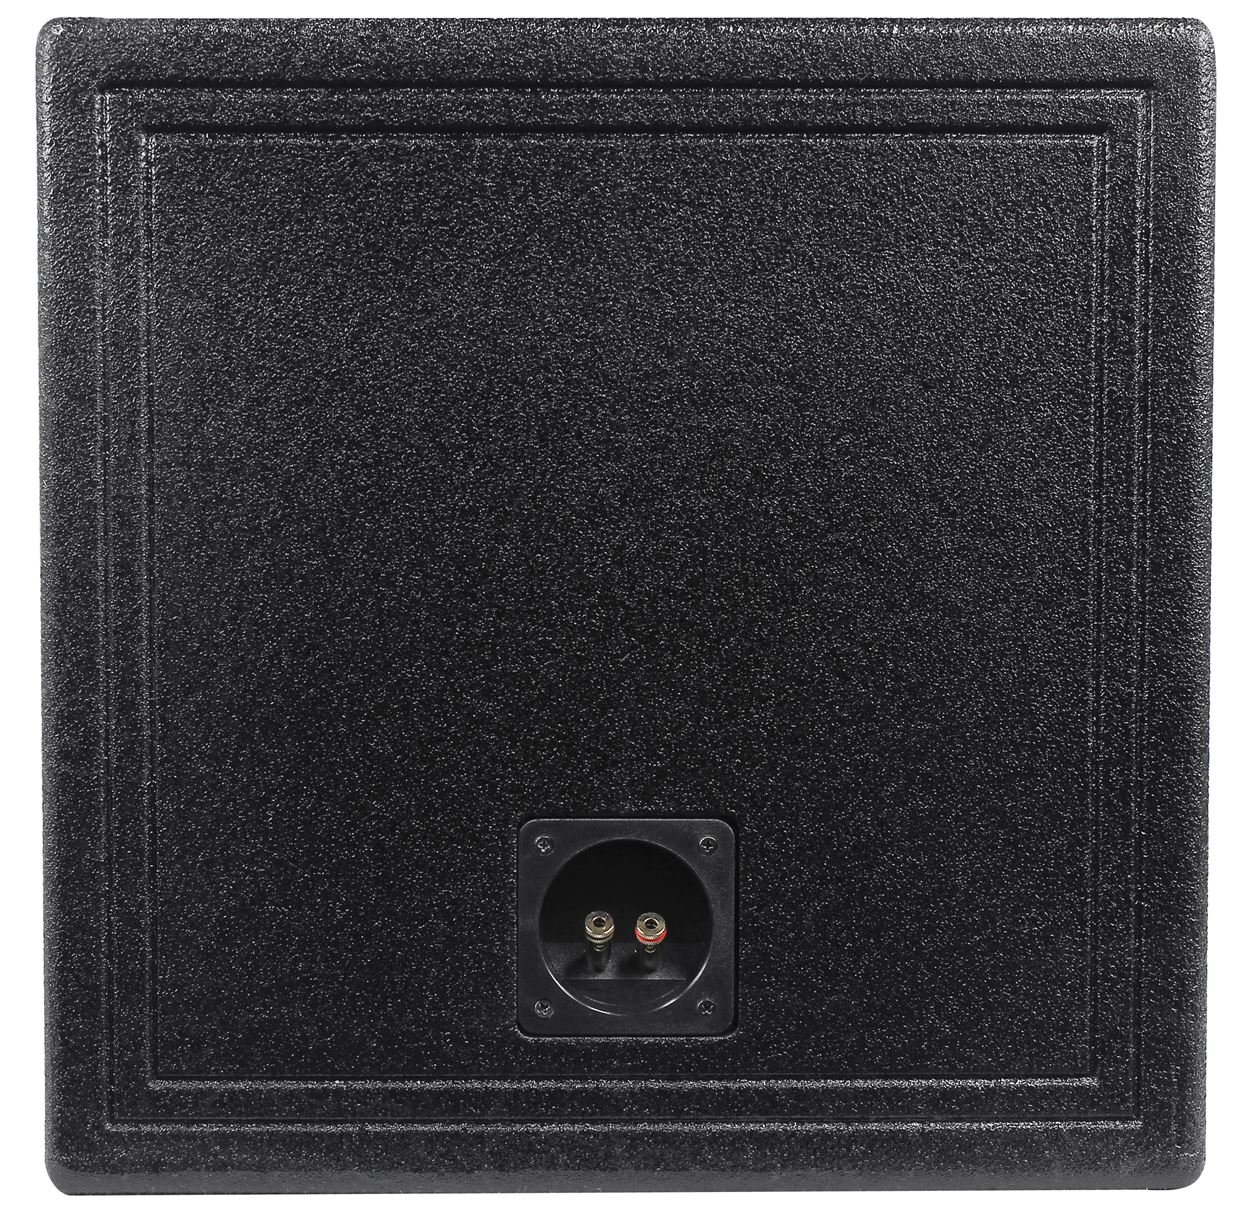 Q Power QBOMB15VL SINGLE Single 15-Inch Side Vented Speaker Box with Durable Bed Liner Spray by Q Power (Image #4)